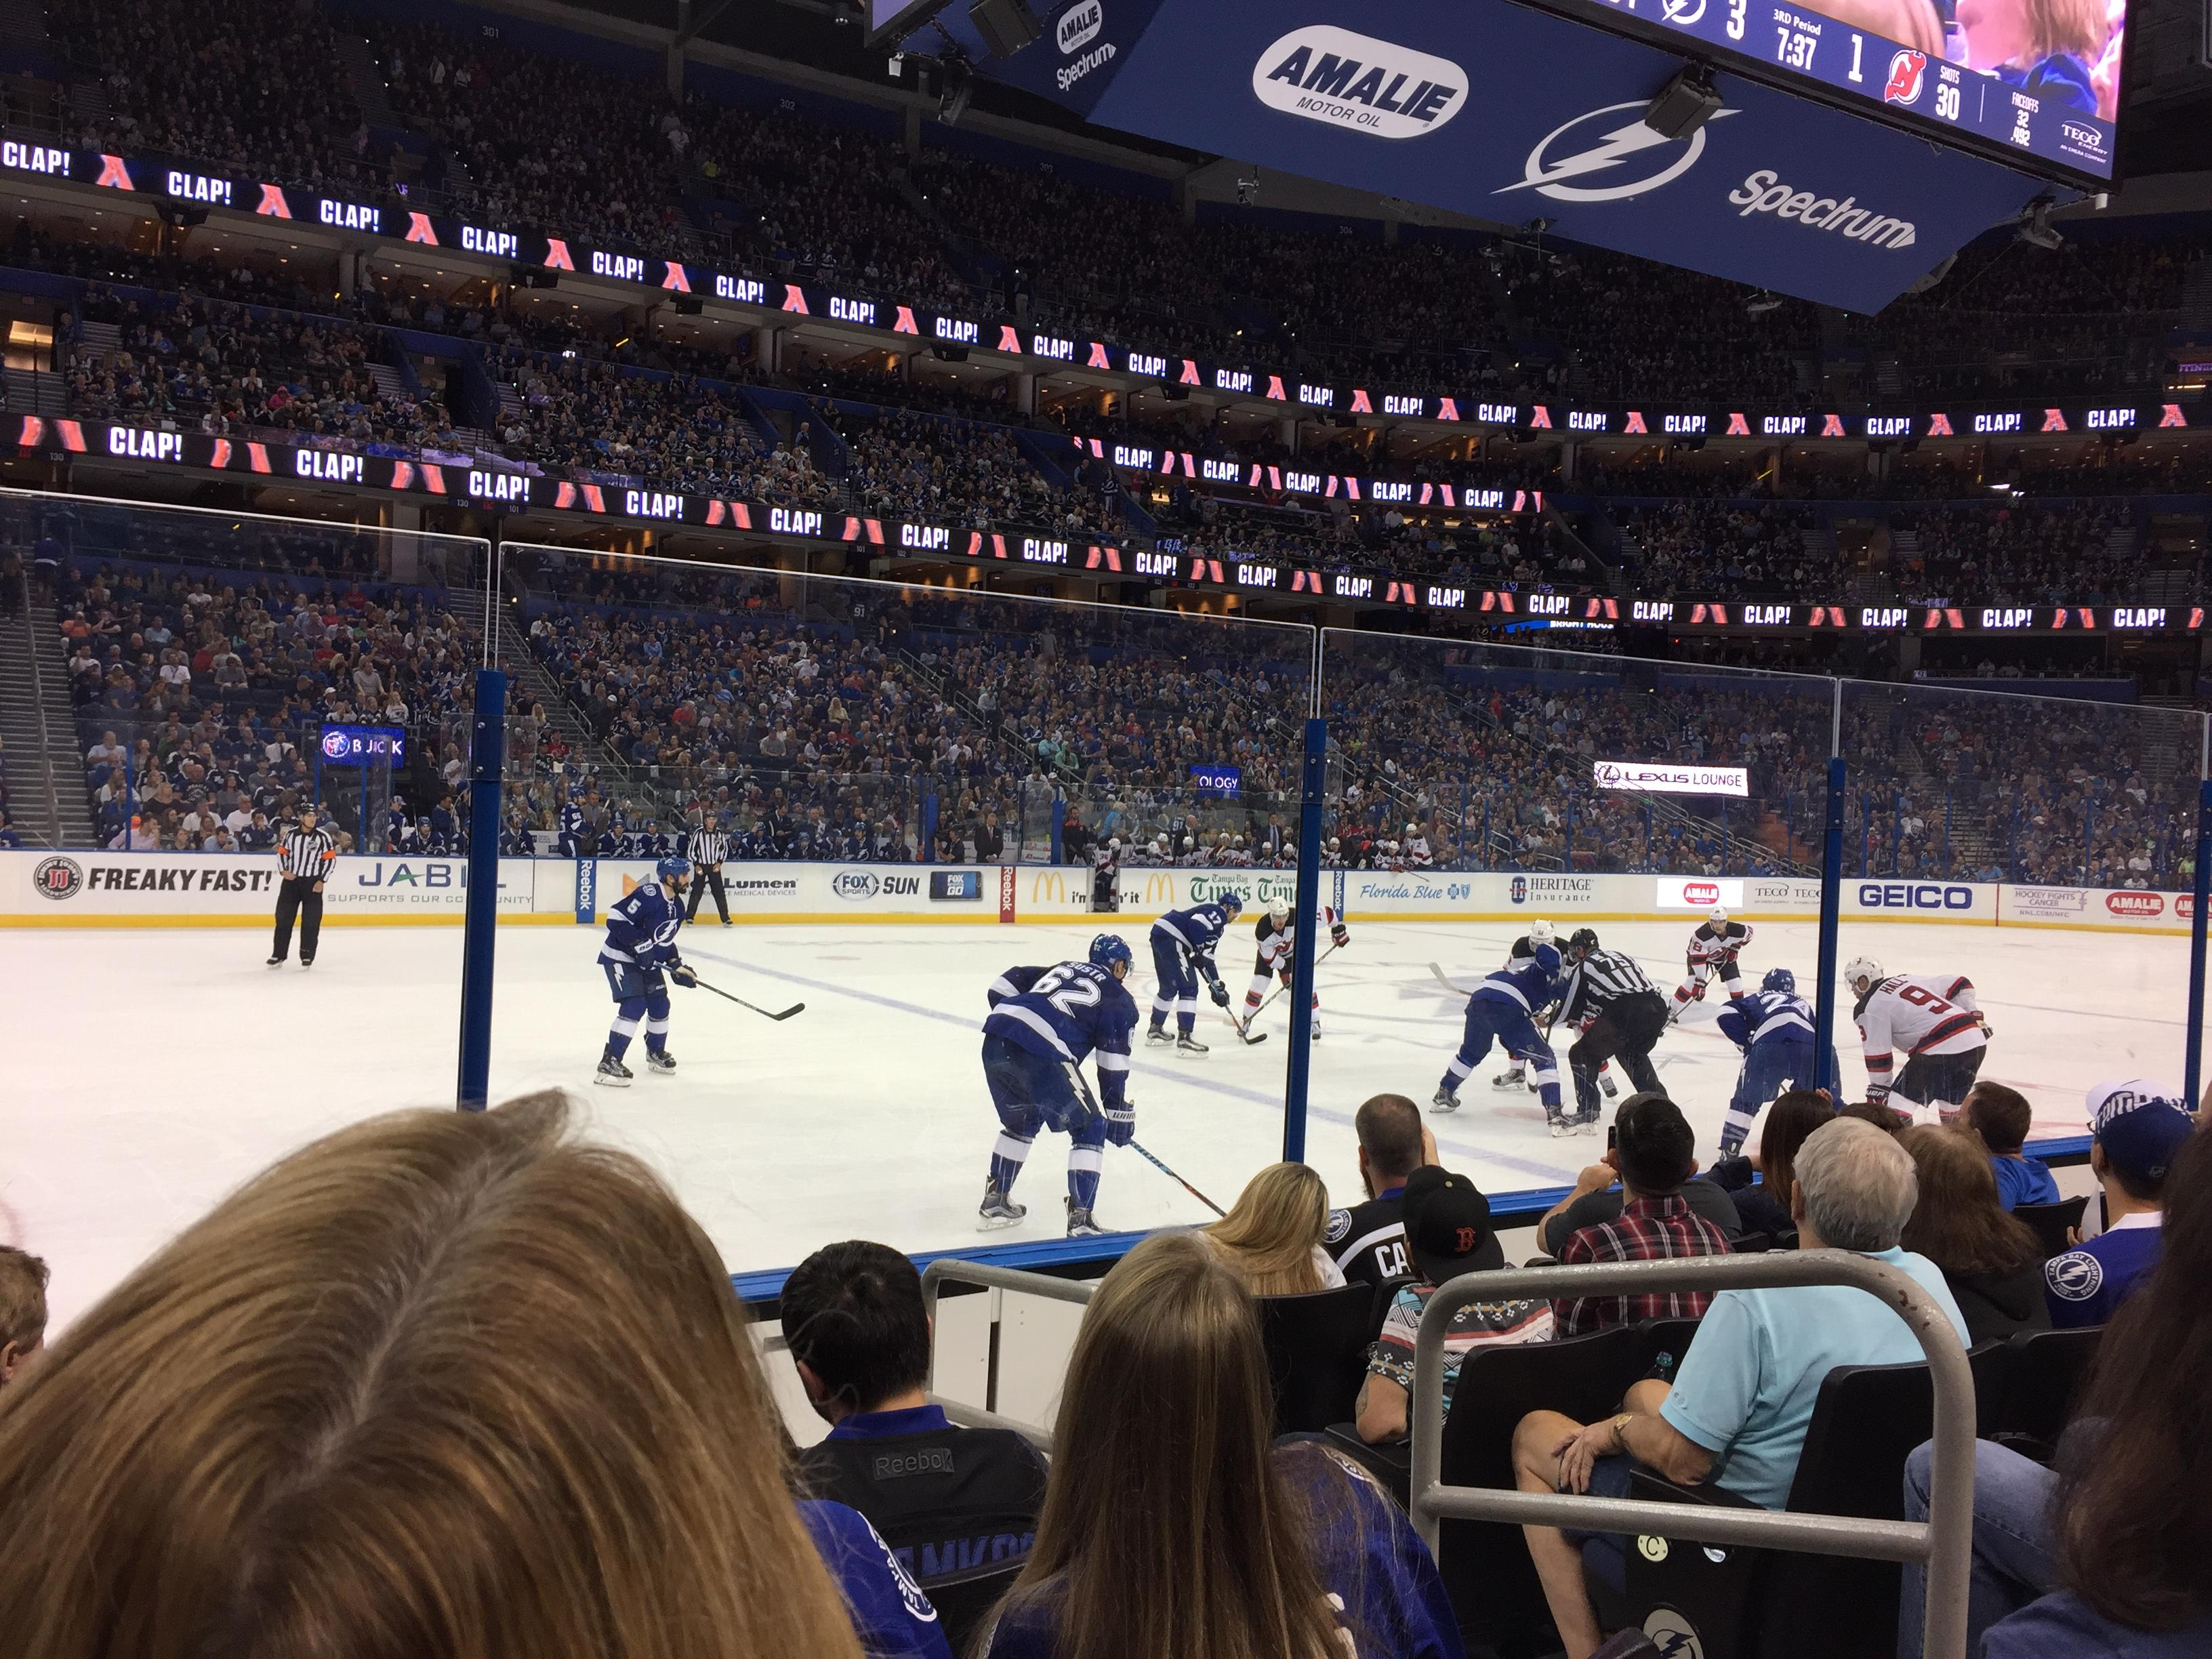 Amalie Arena Section 118 Row F Seat 3